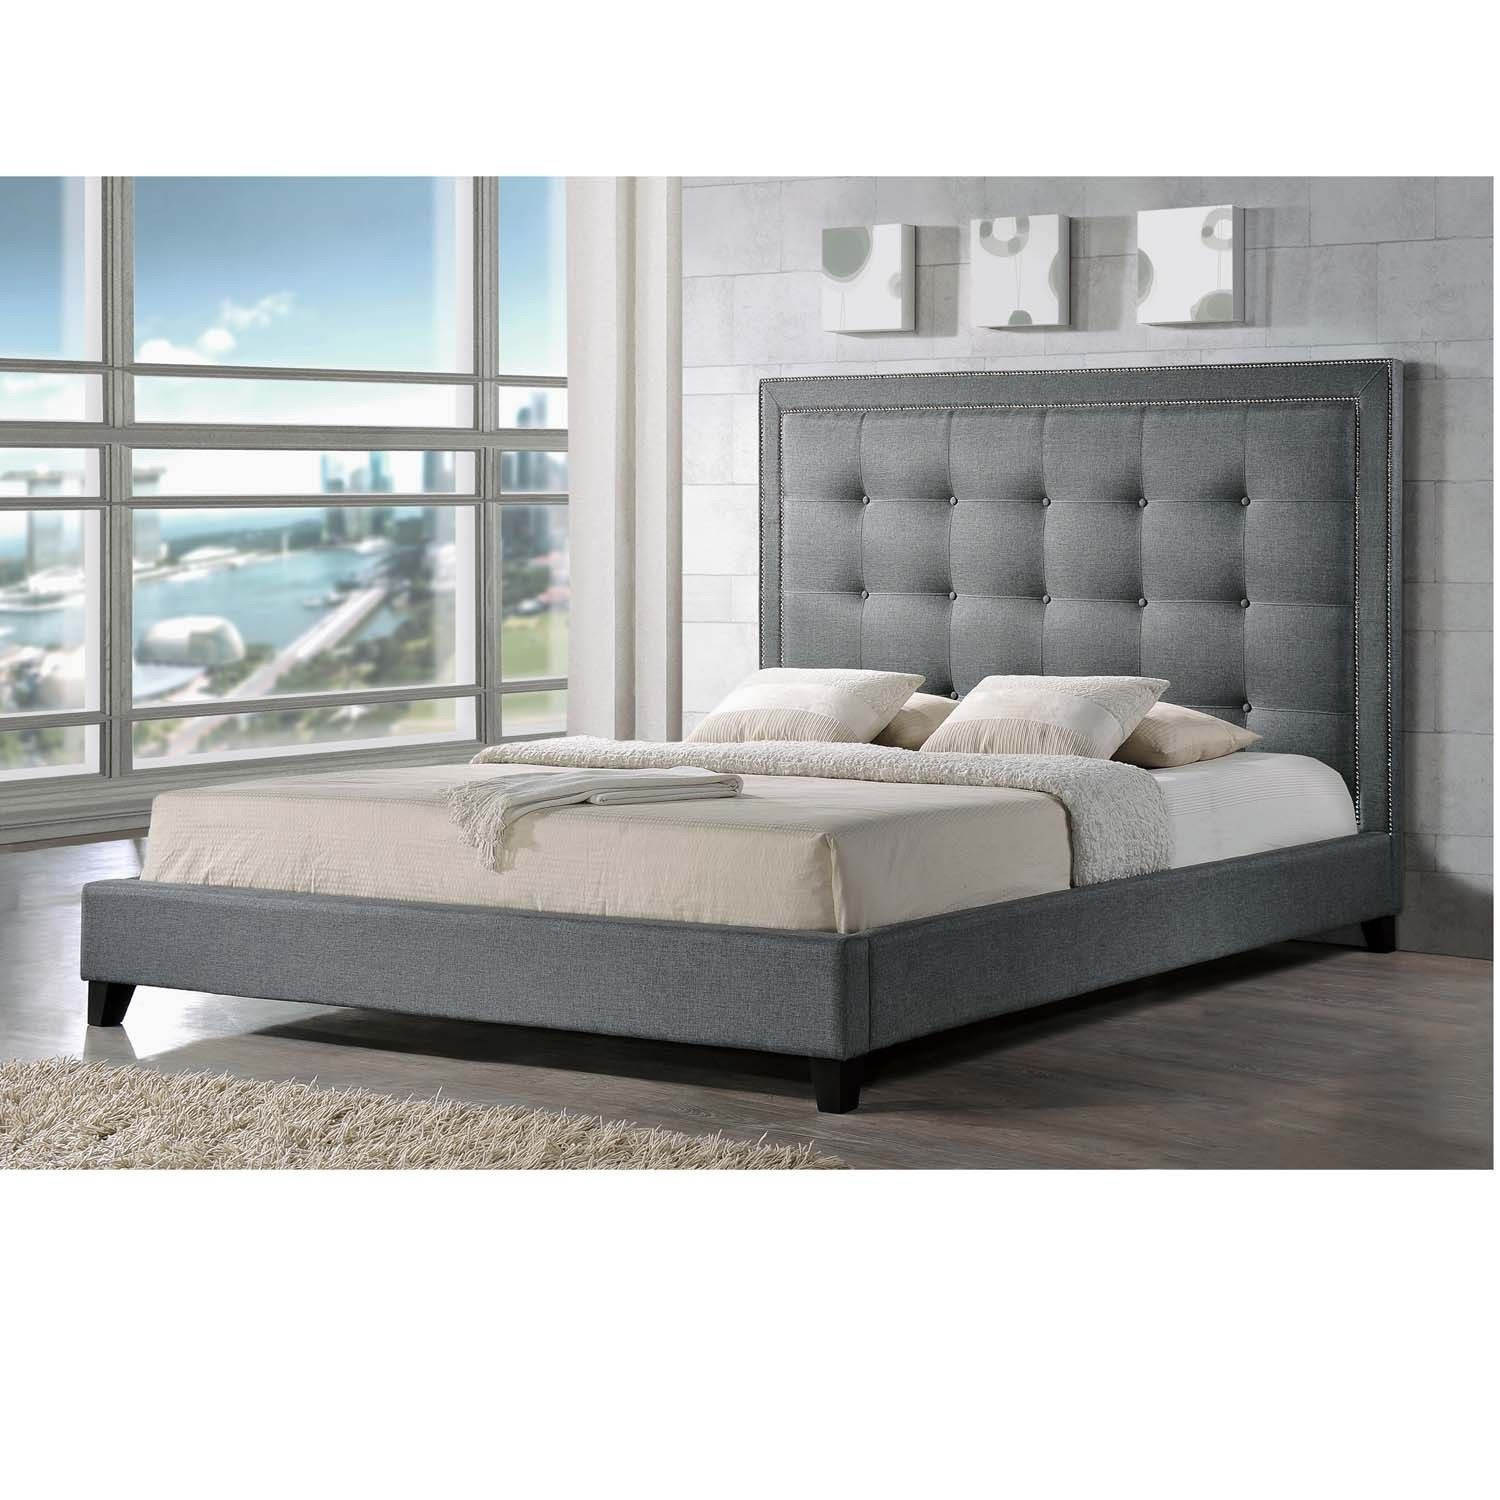 Merveilleux Baxton Studio Hirst Grey Linen Bed With Upholstered Headboard By Baxton  Studio